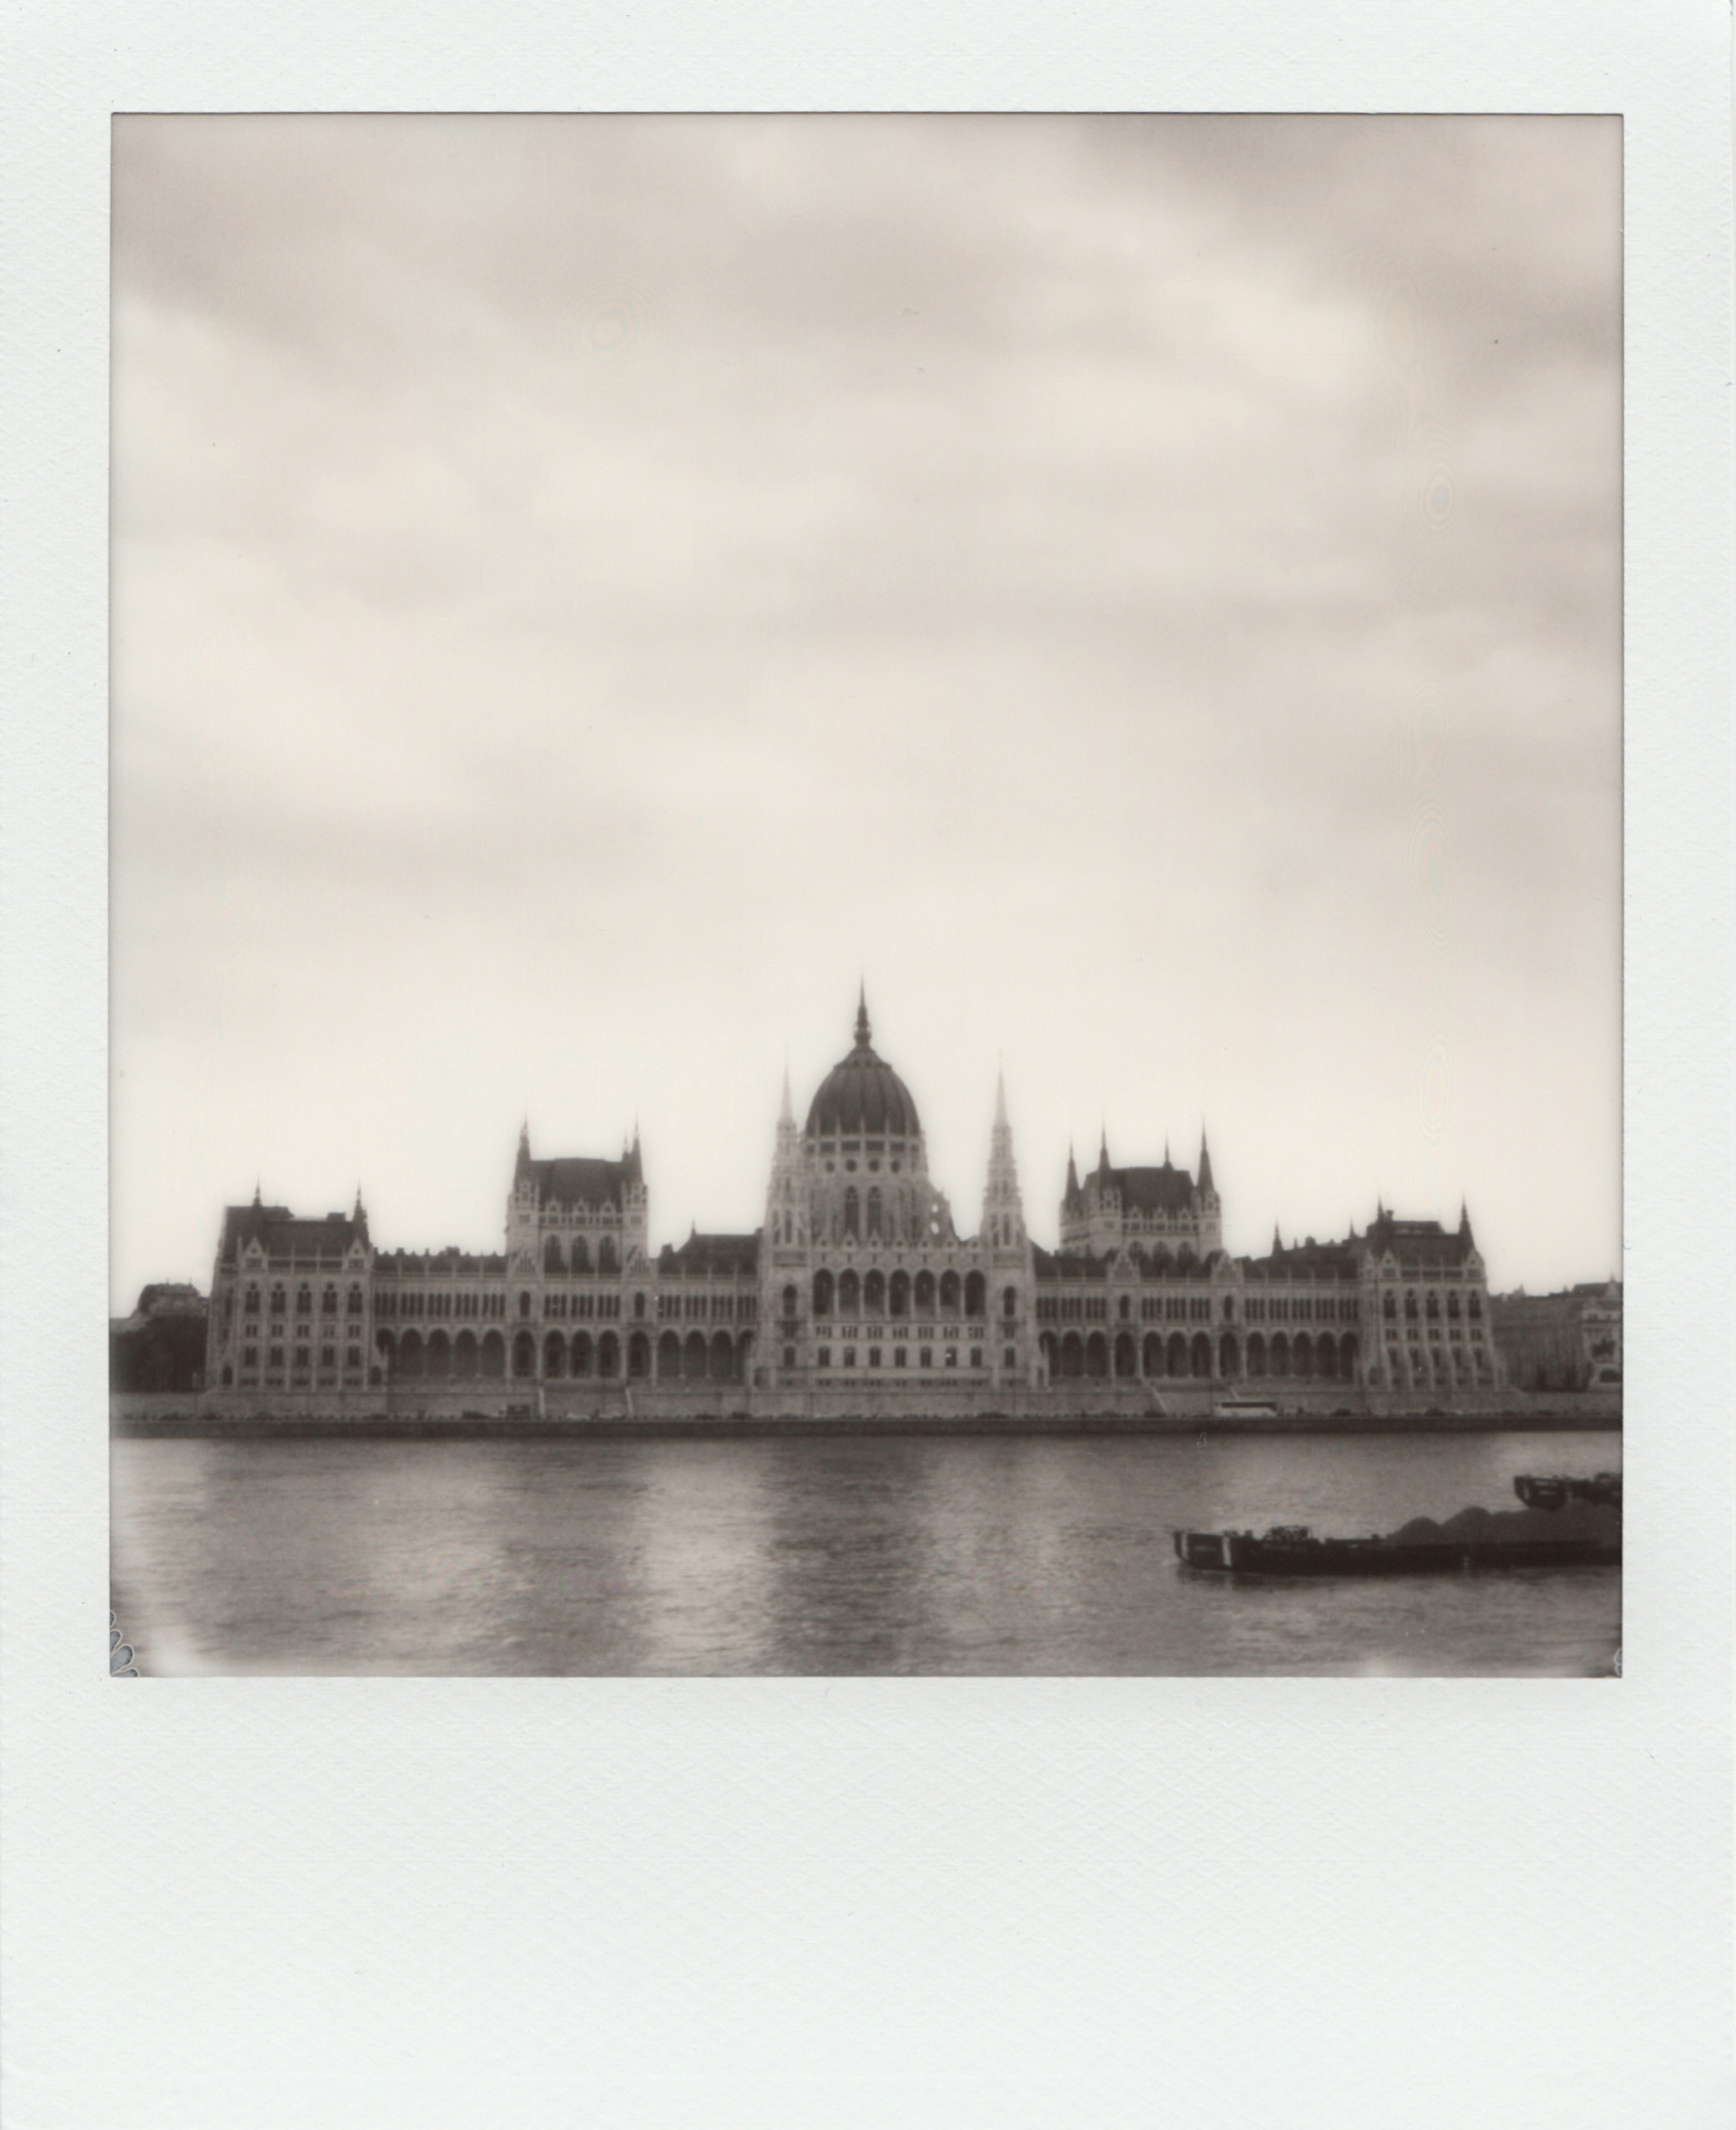 When In Budapest | SX-70 Alpha1 | Impossible Project Black and White SX-70 film | Ioana Taut